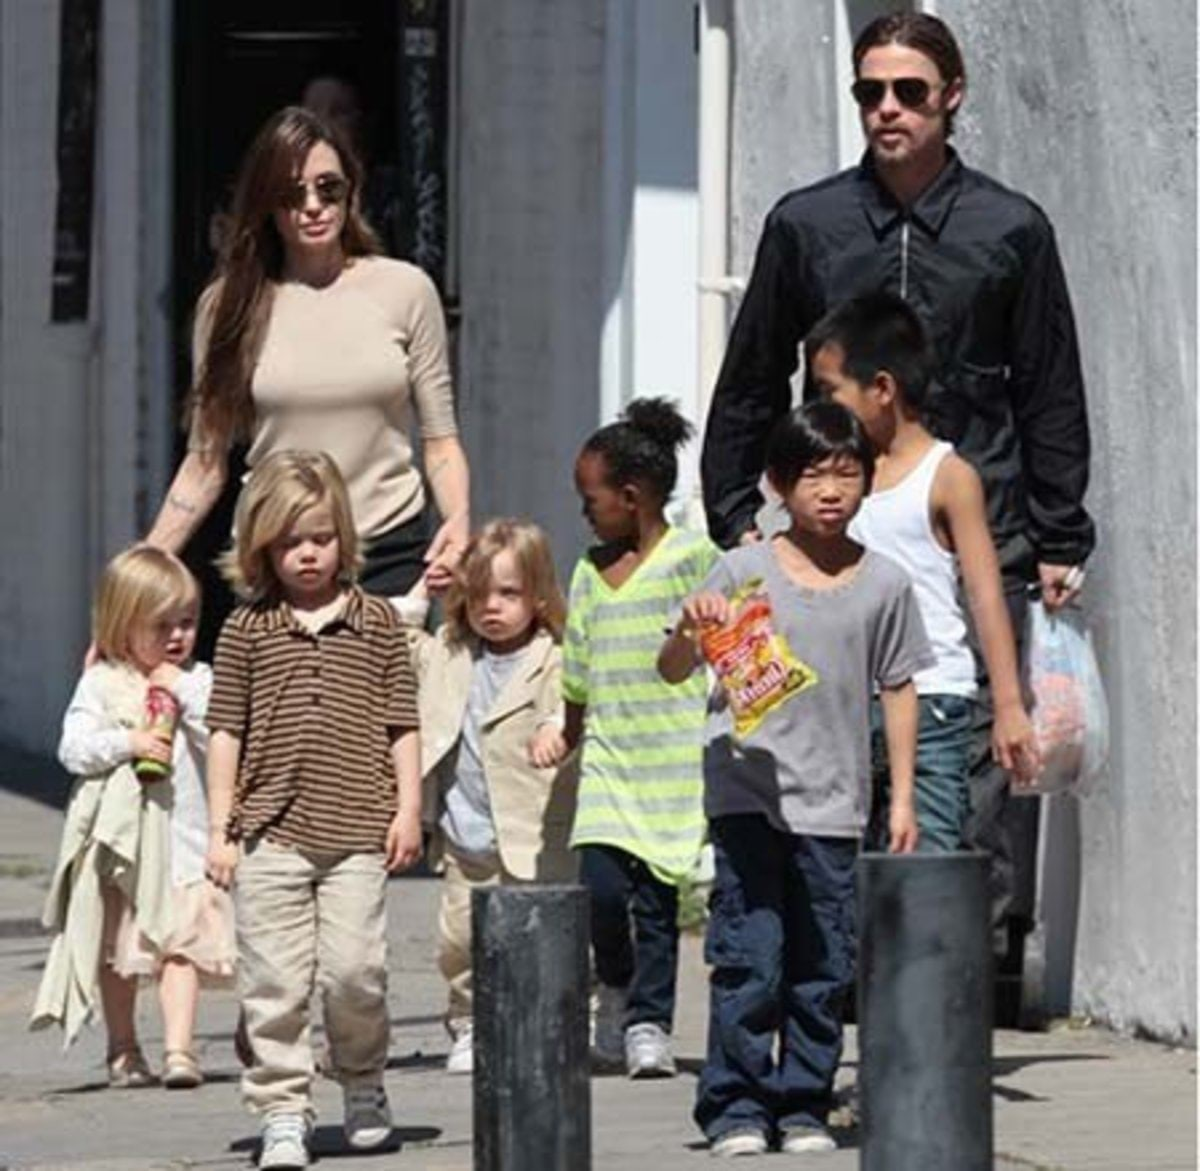 2011-06-28-11-00-08-2-angelina-jolie-and-brad-pitt-take-their-children-t